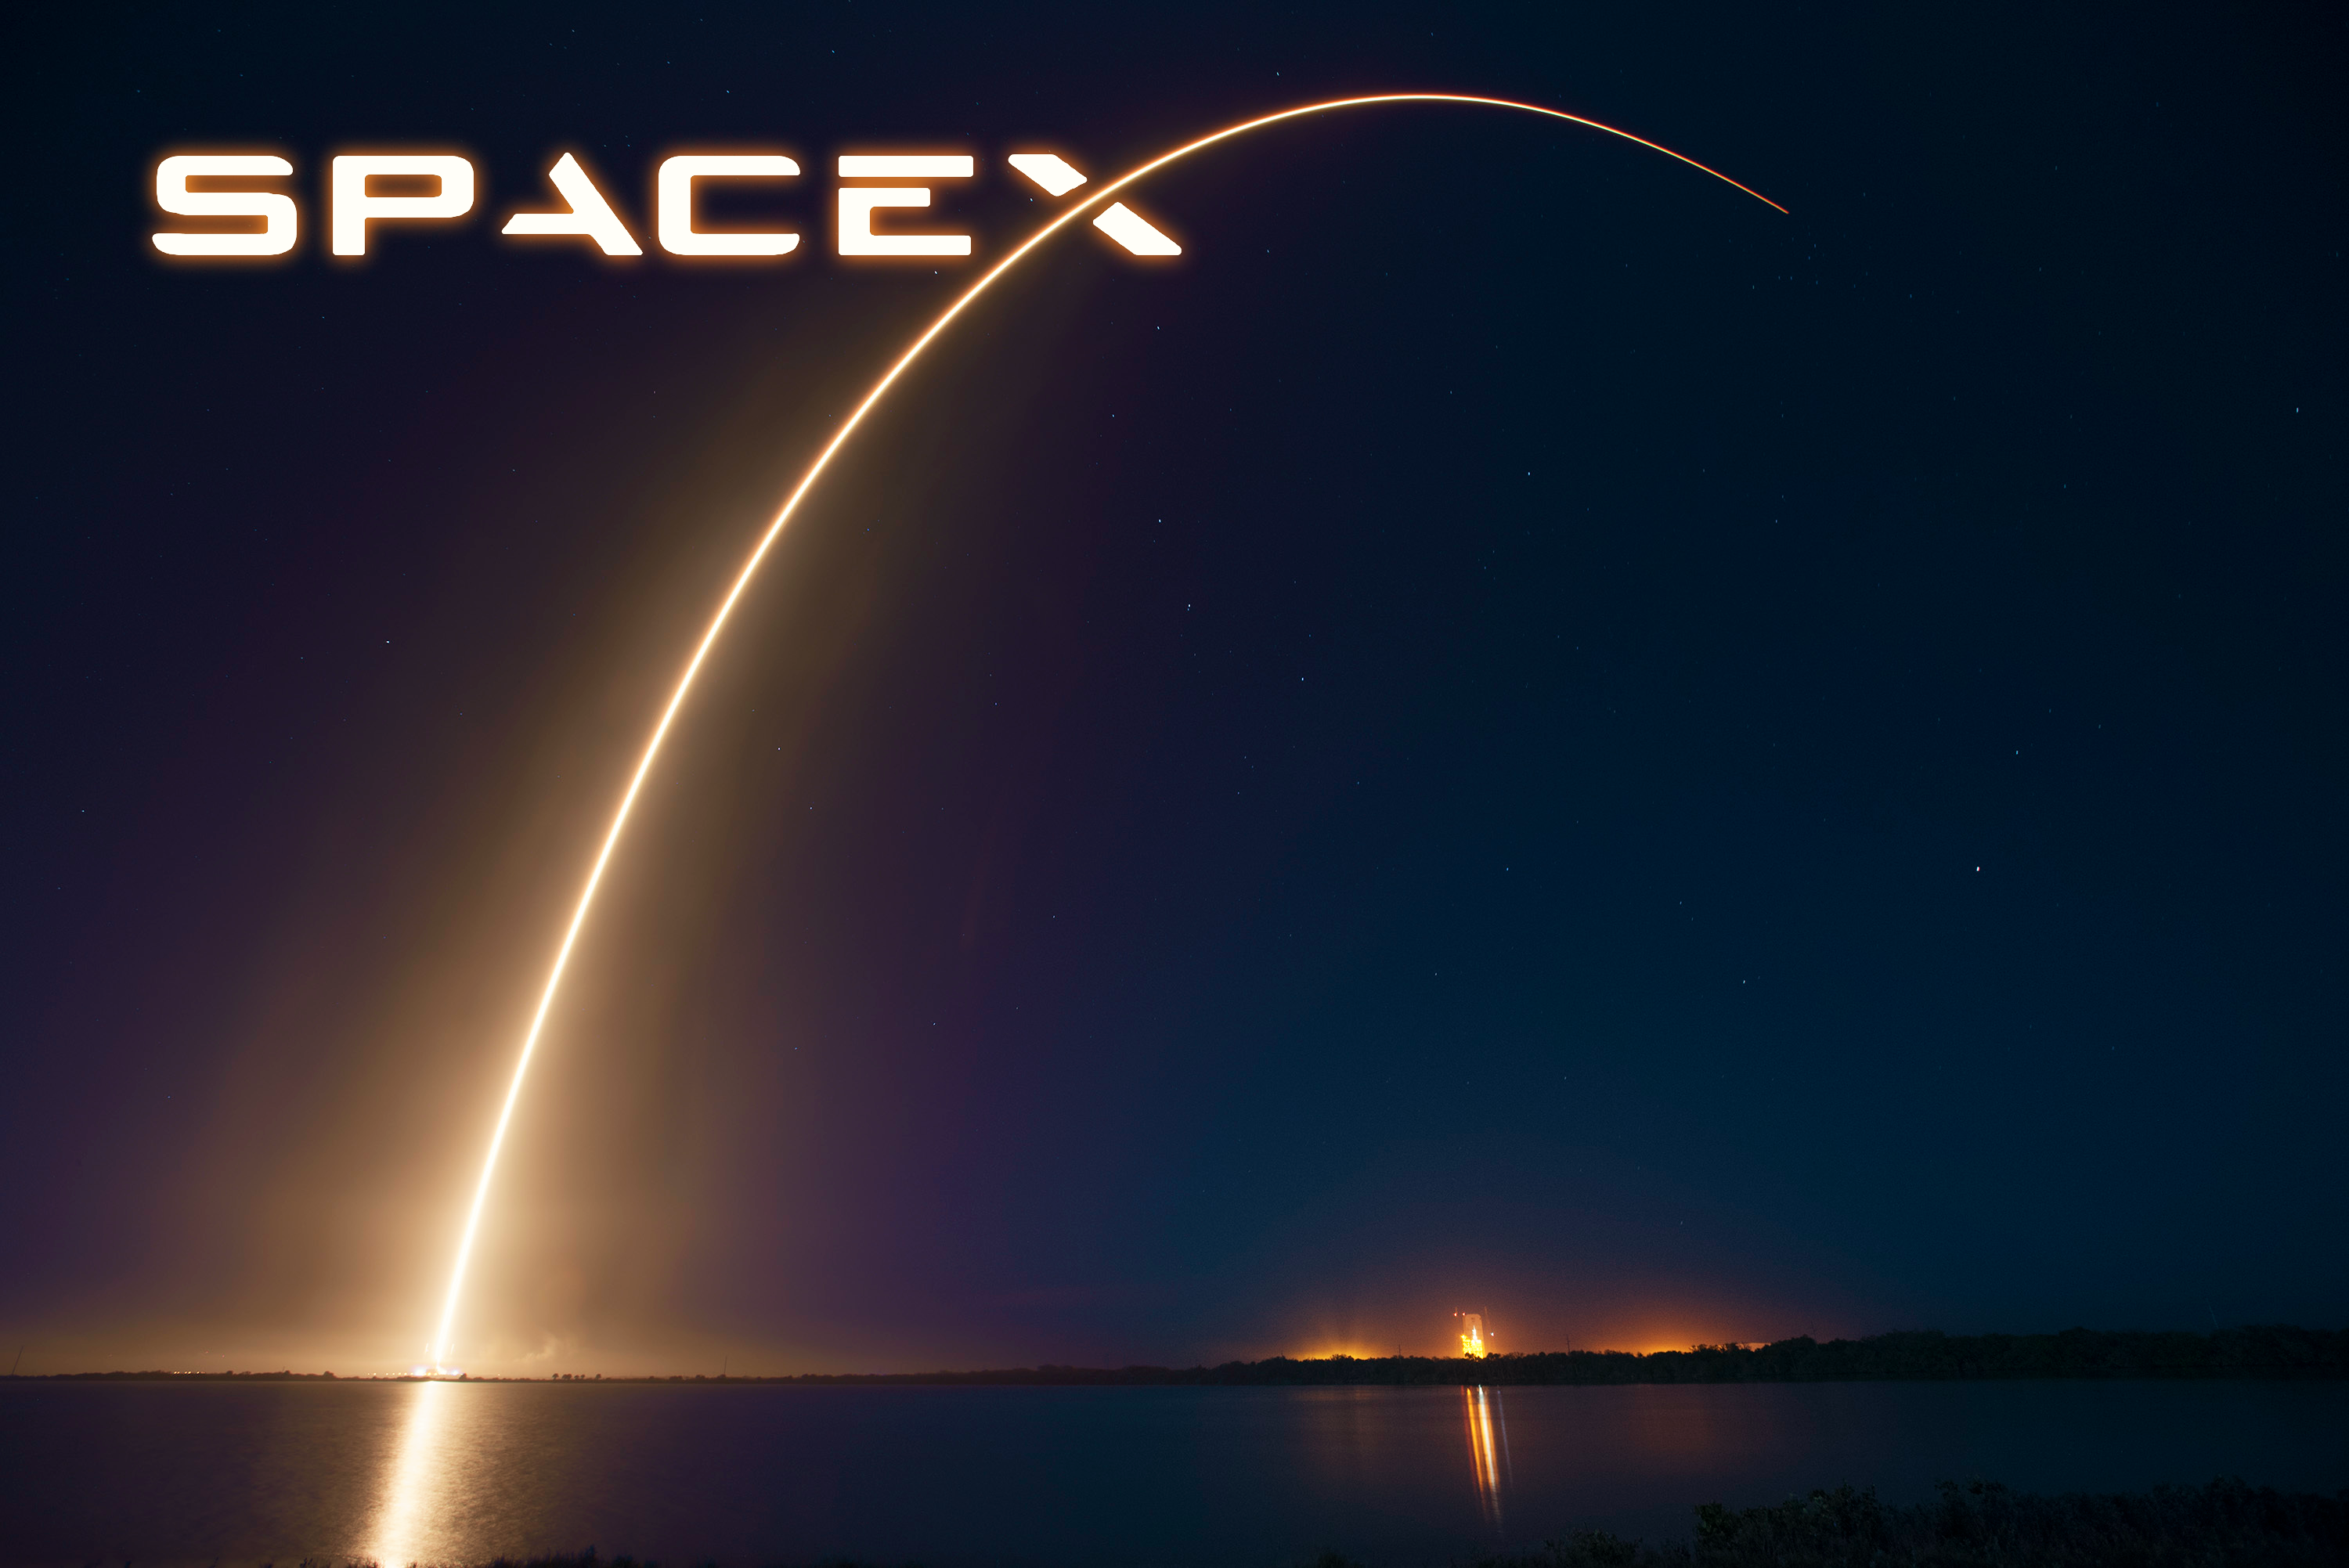 SpaceX has signed another contract with NASA for 5 future space missions.